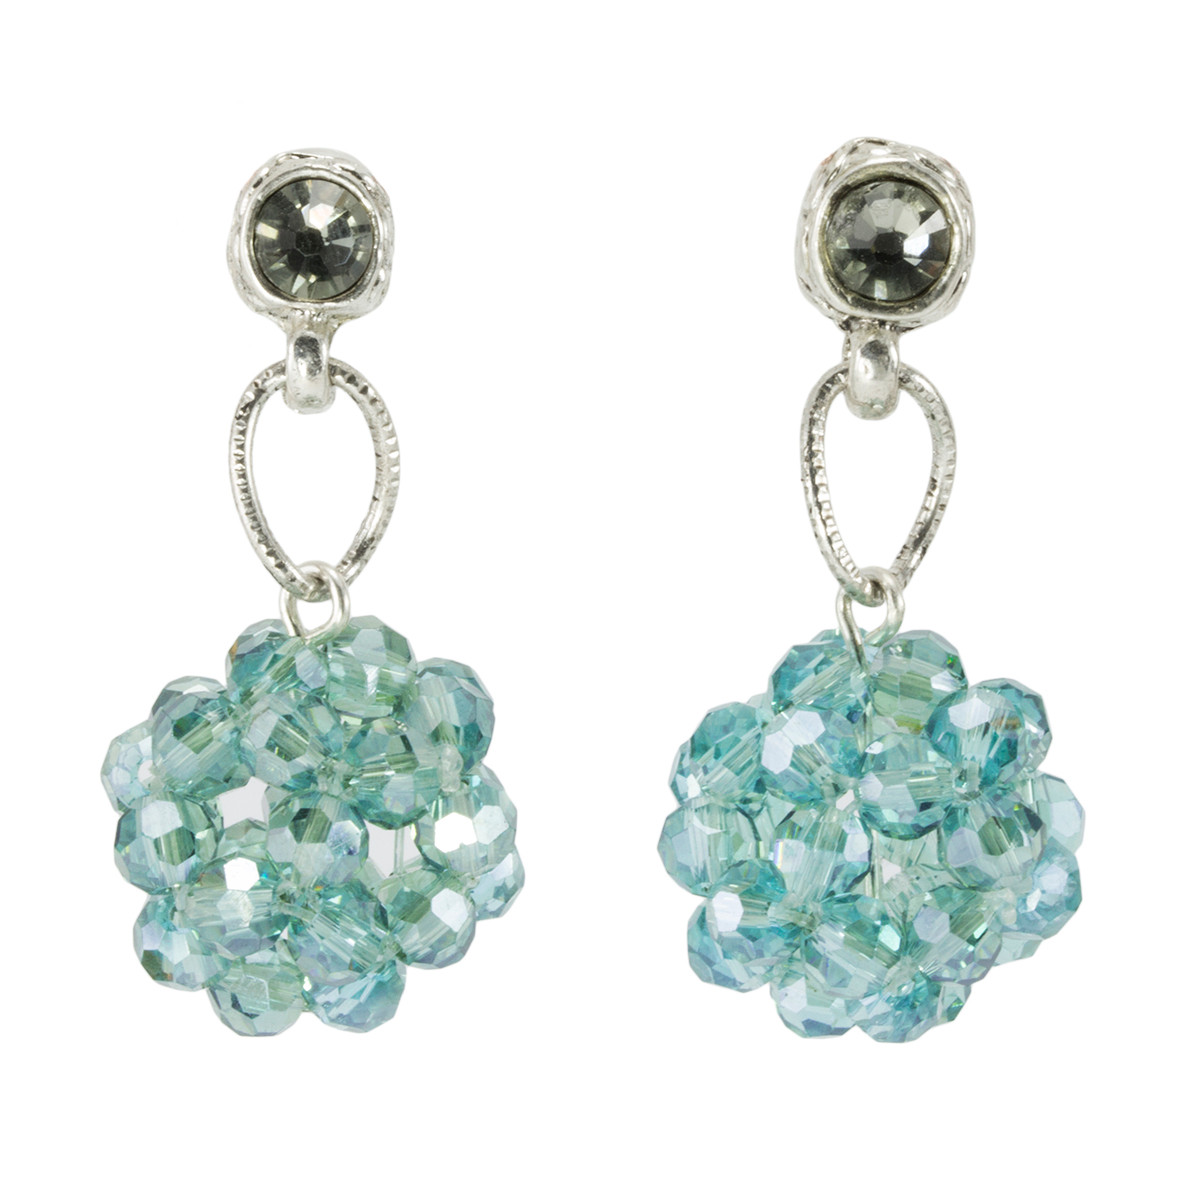 Anat Jewelry Turquoise Crystal Shabby Chic Earrings